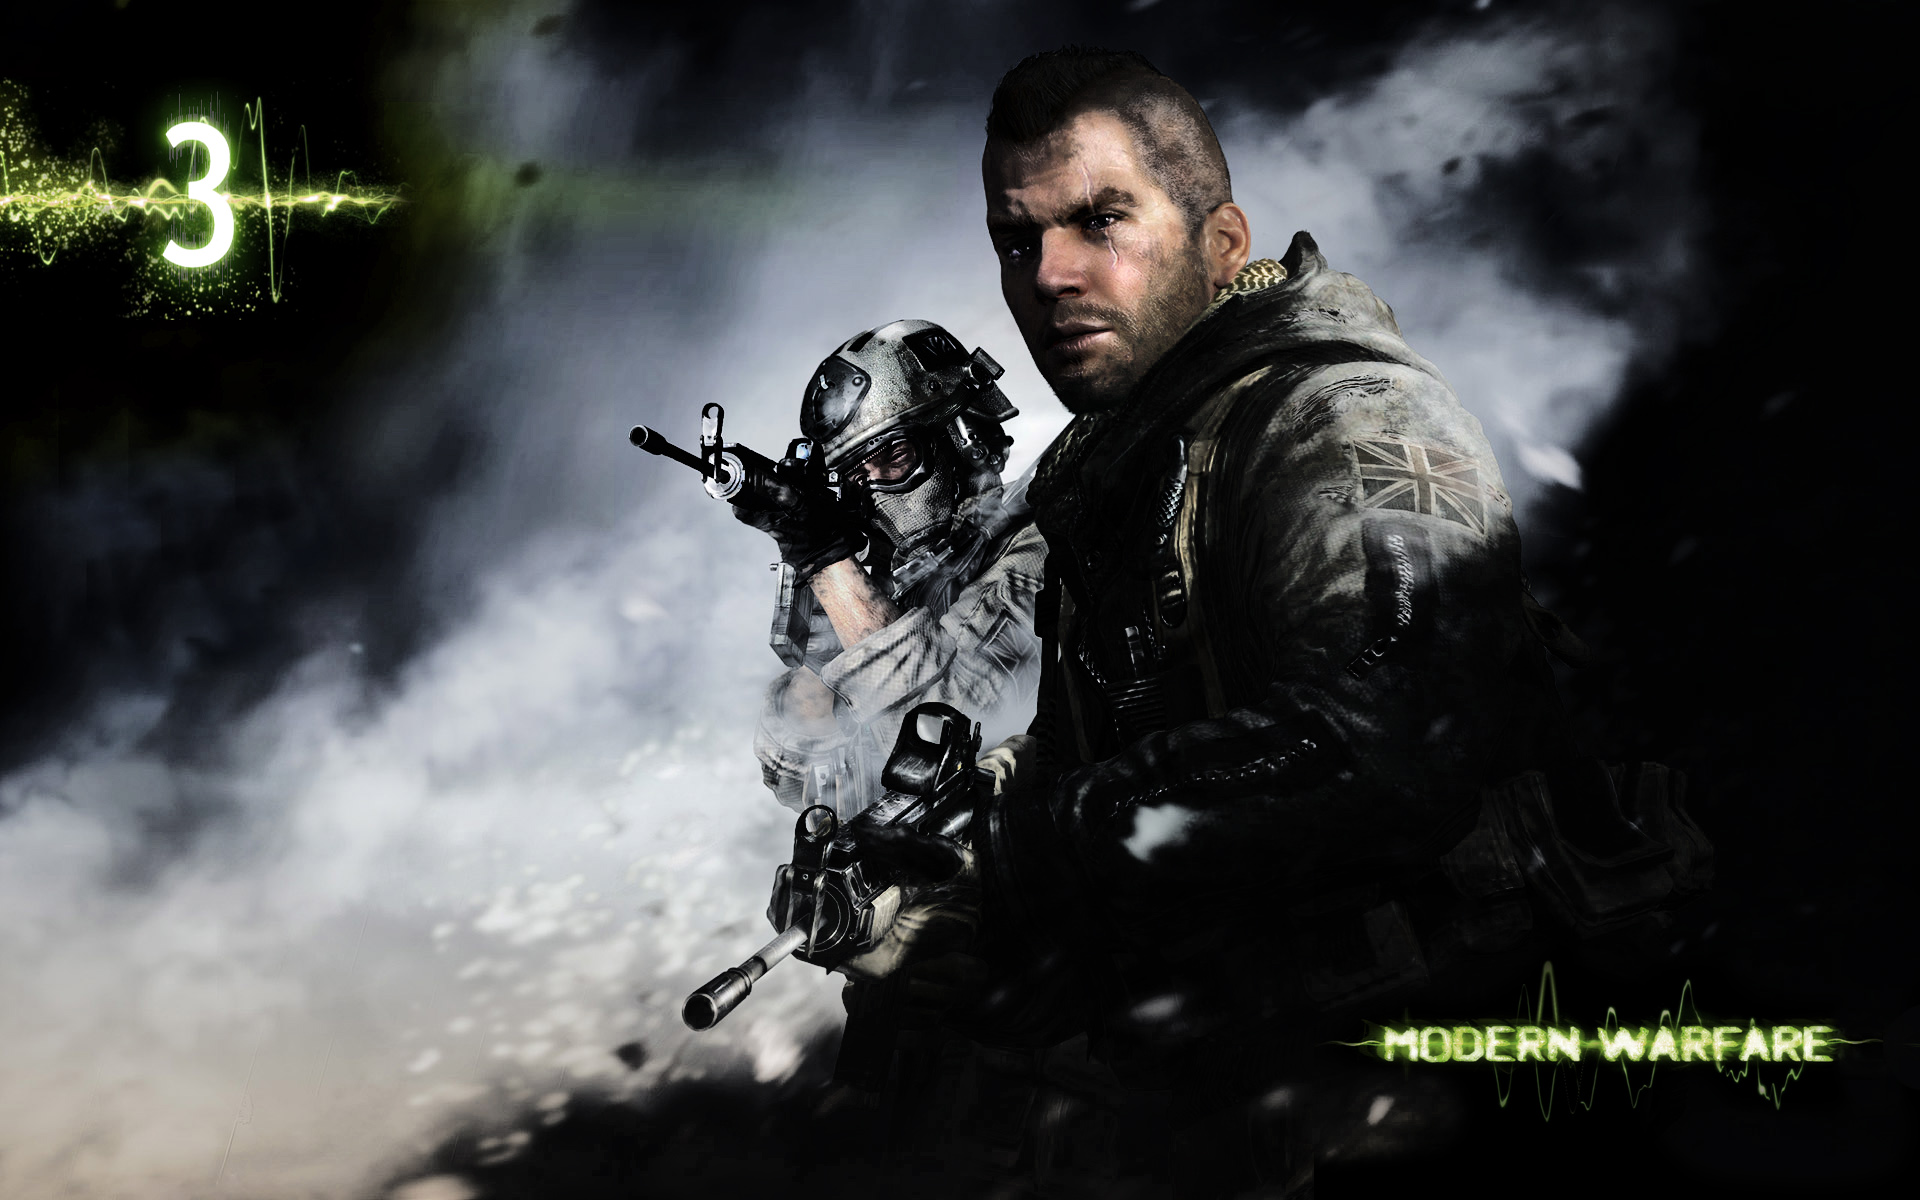 Wallpapers-imagenes:Call Of Duty HD